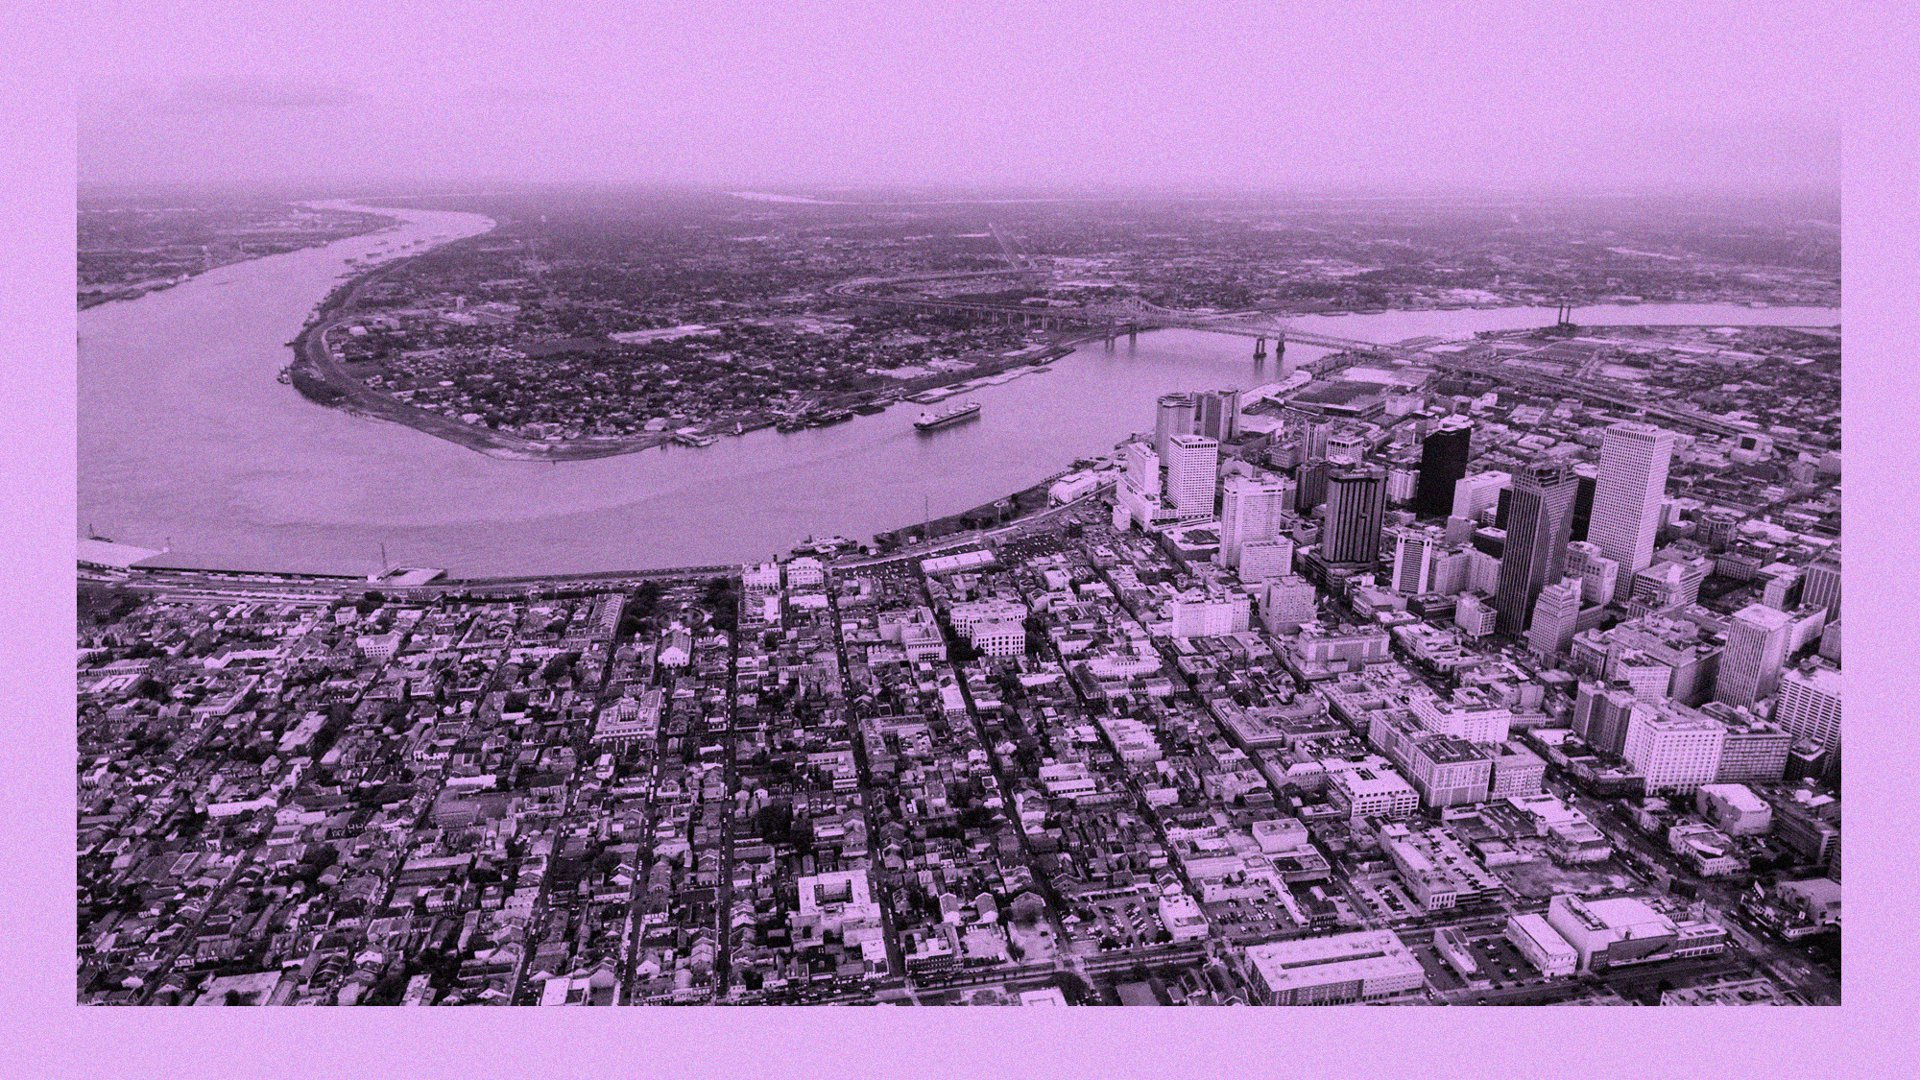 A drone photo of downtown New Orleans and the Mississippi River, with the French Quarter in the foreground and the West Bank in the distance